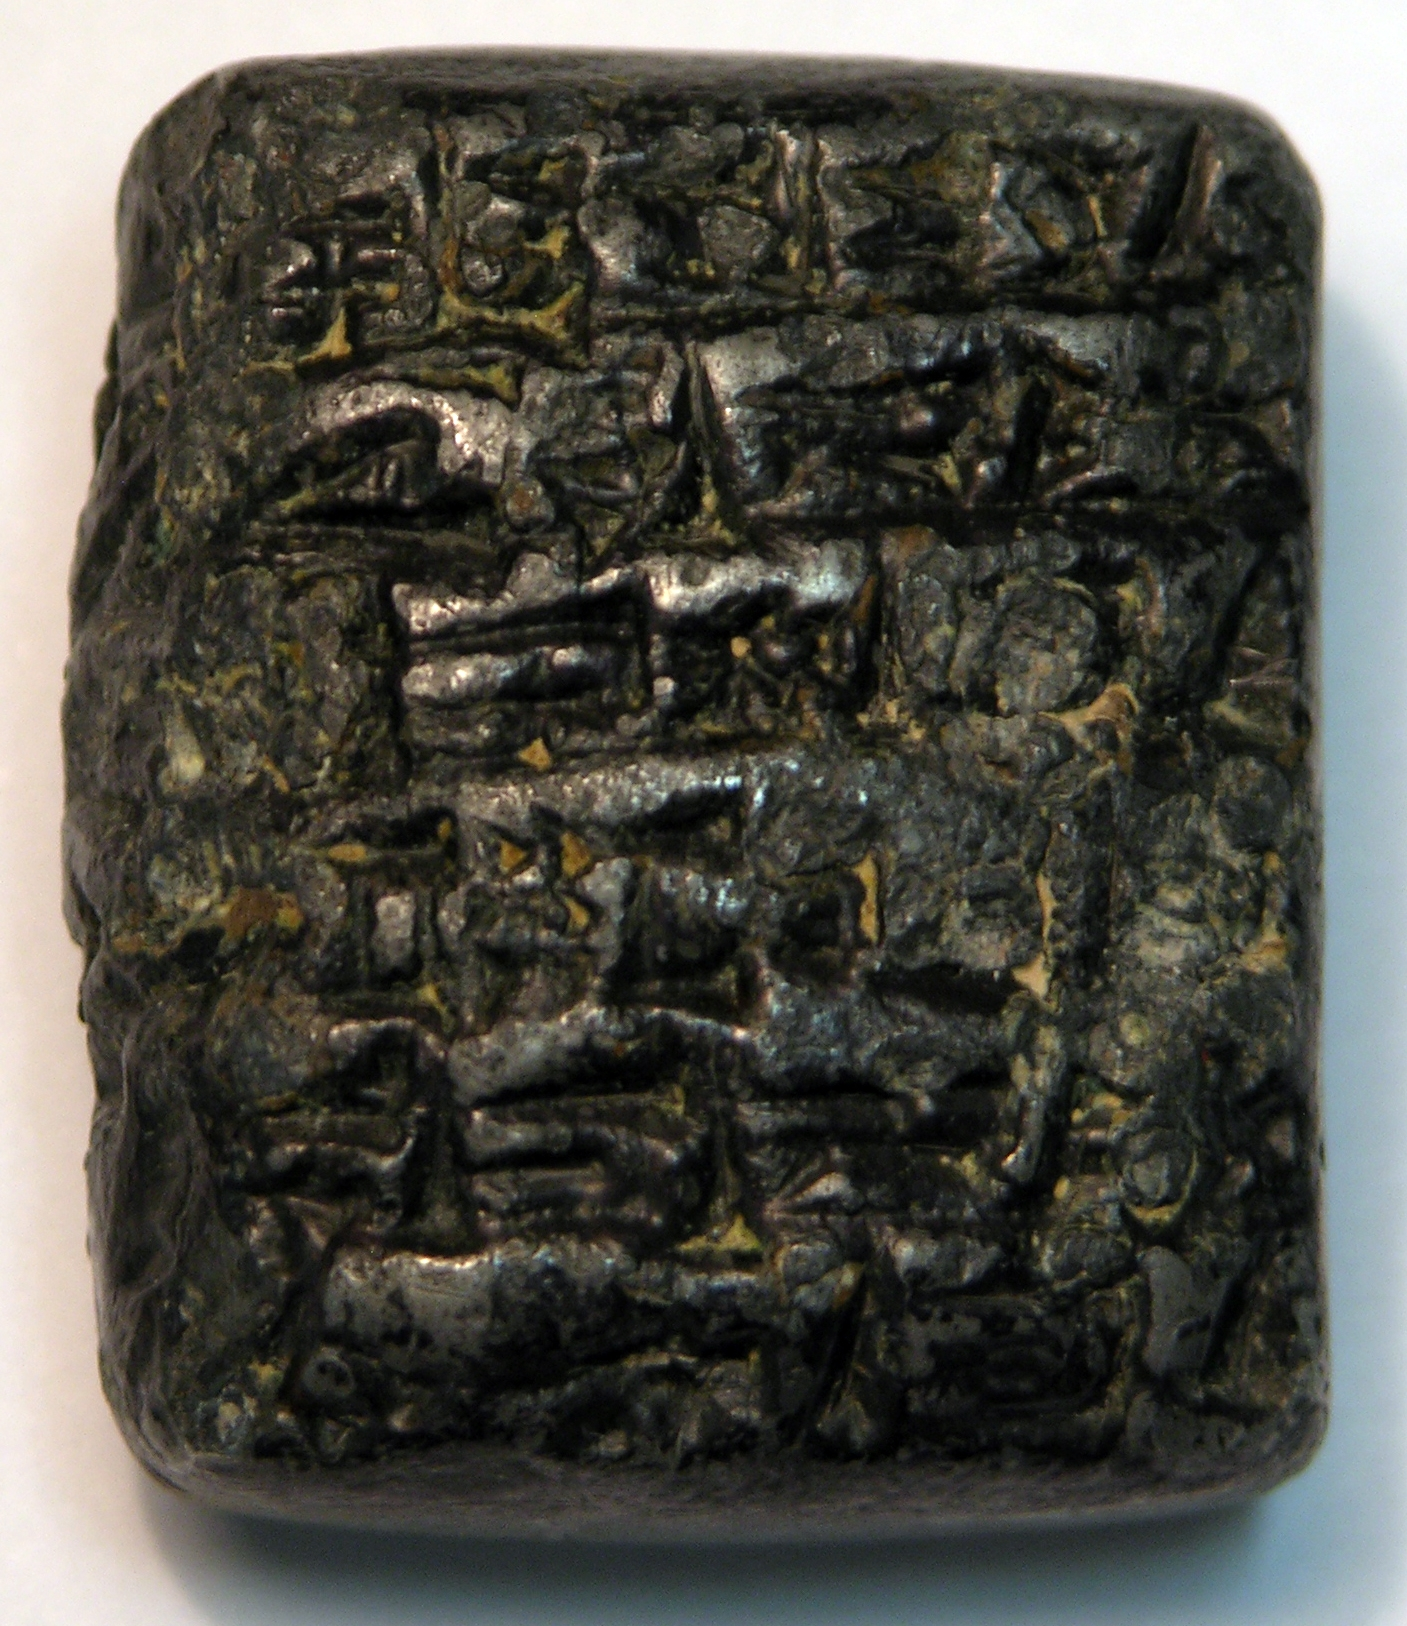 Hearn Tablet ancient Sumerian tablet found in Troup County Georgia